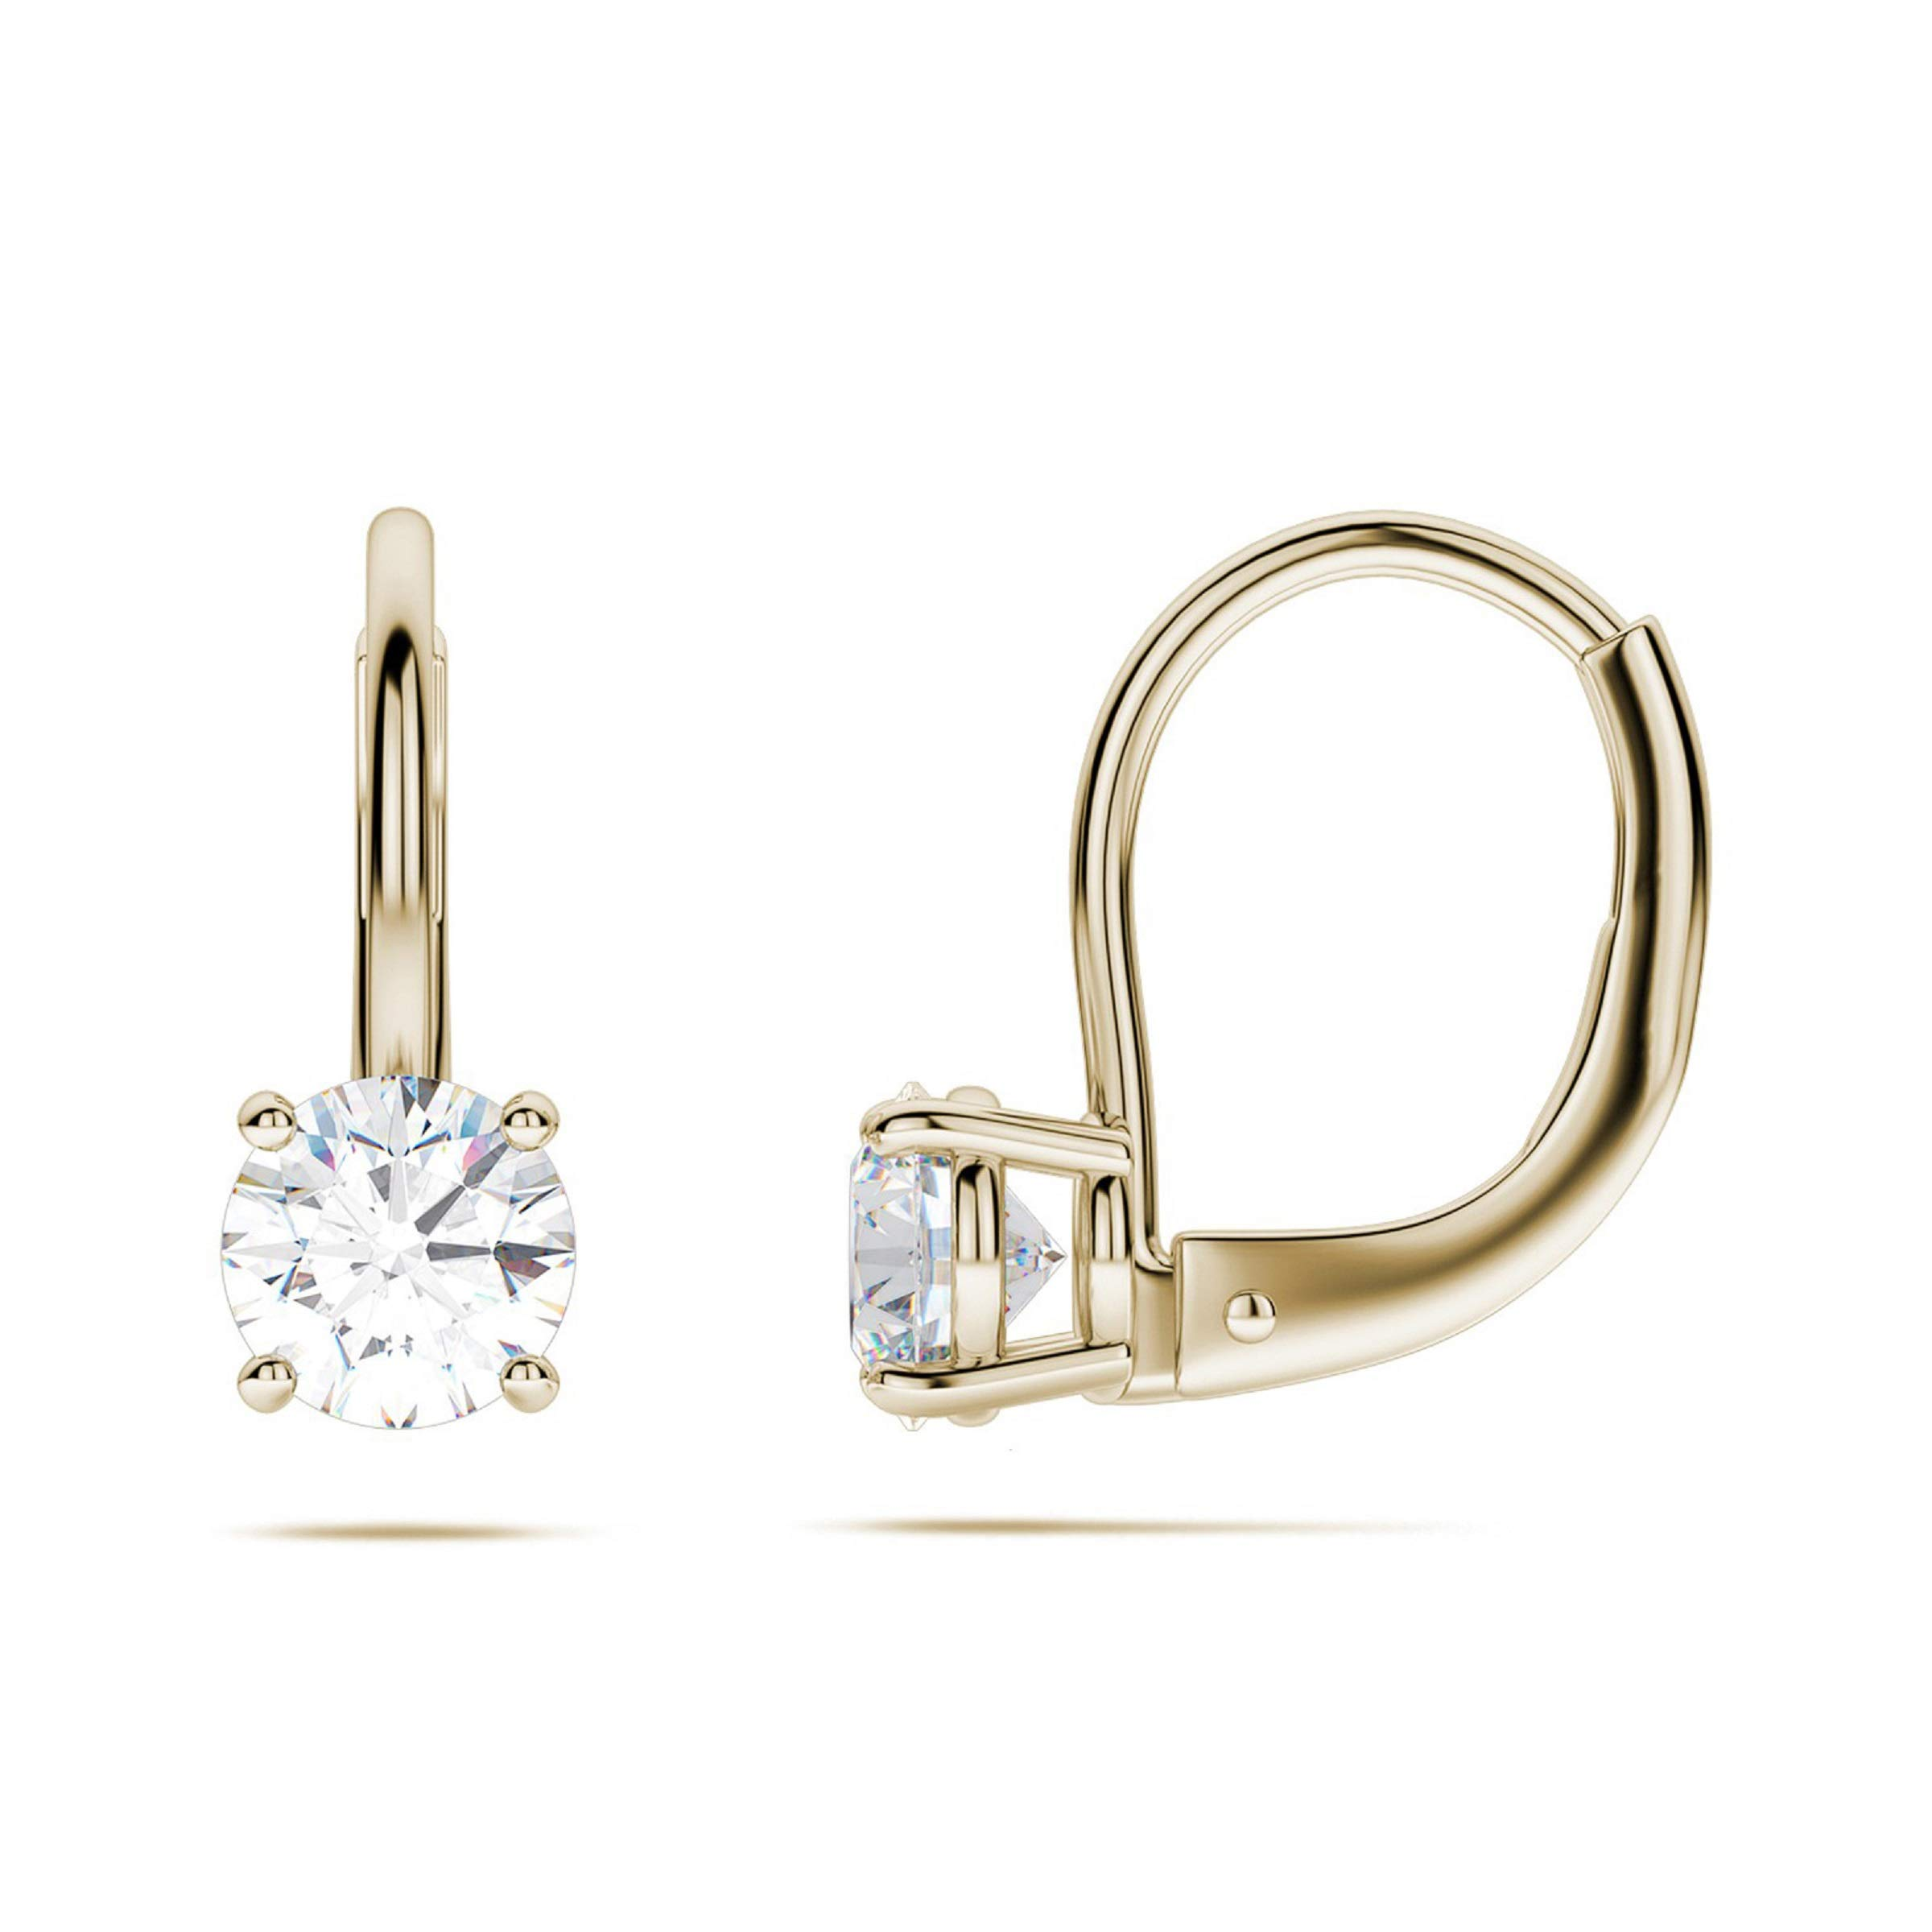 0.9ct Brilliant Round Cut Solitaire Highest Quality Moissanite Unisex Anniversary Gift Lever back Drop Dangle Earrings Real Solid 14k Yellow Gold